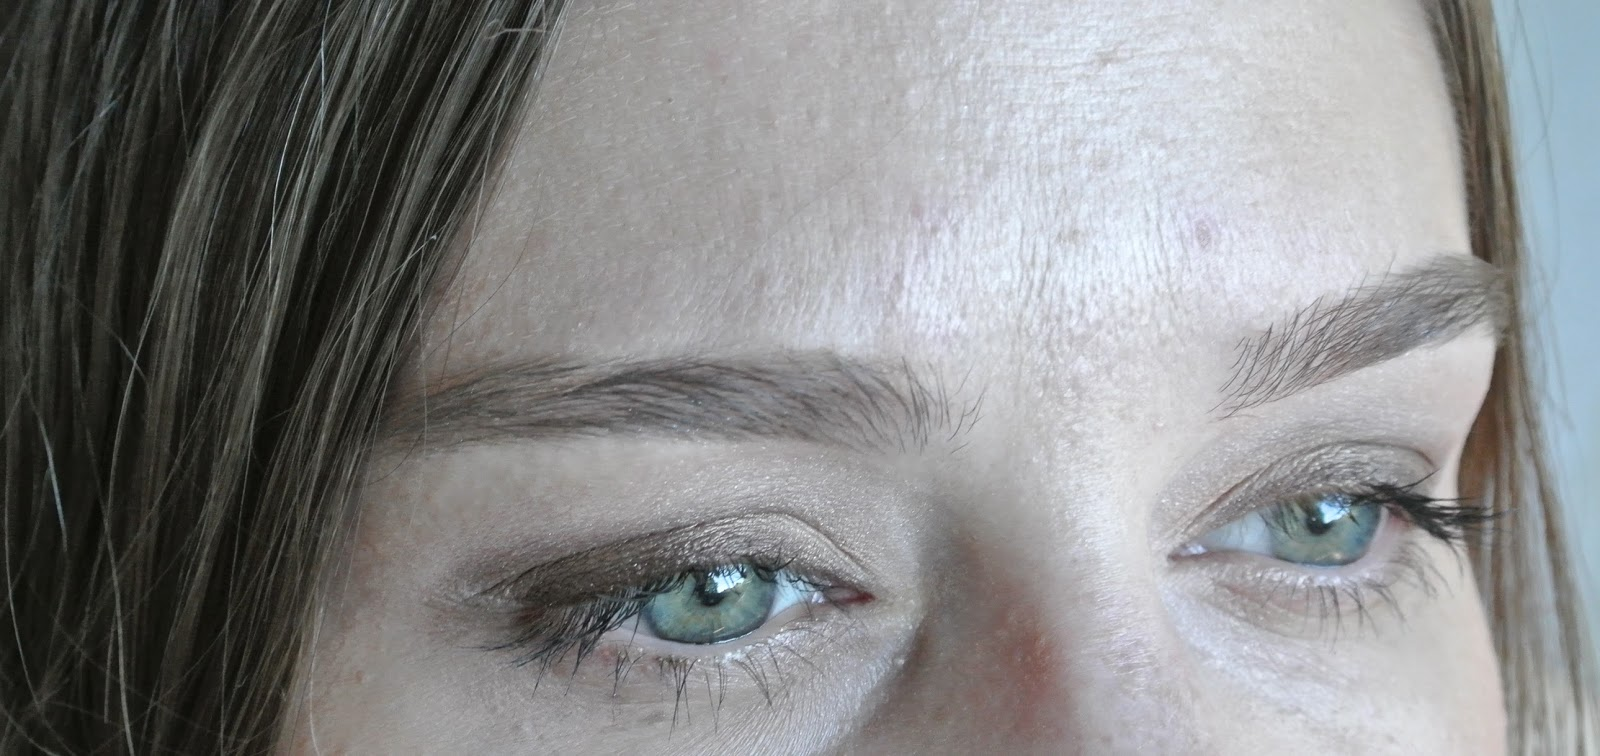 Close up of eye look